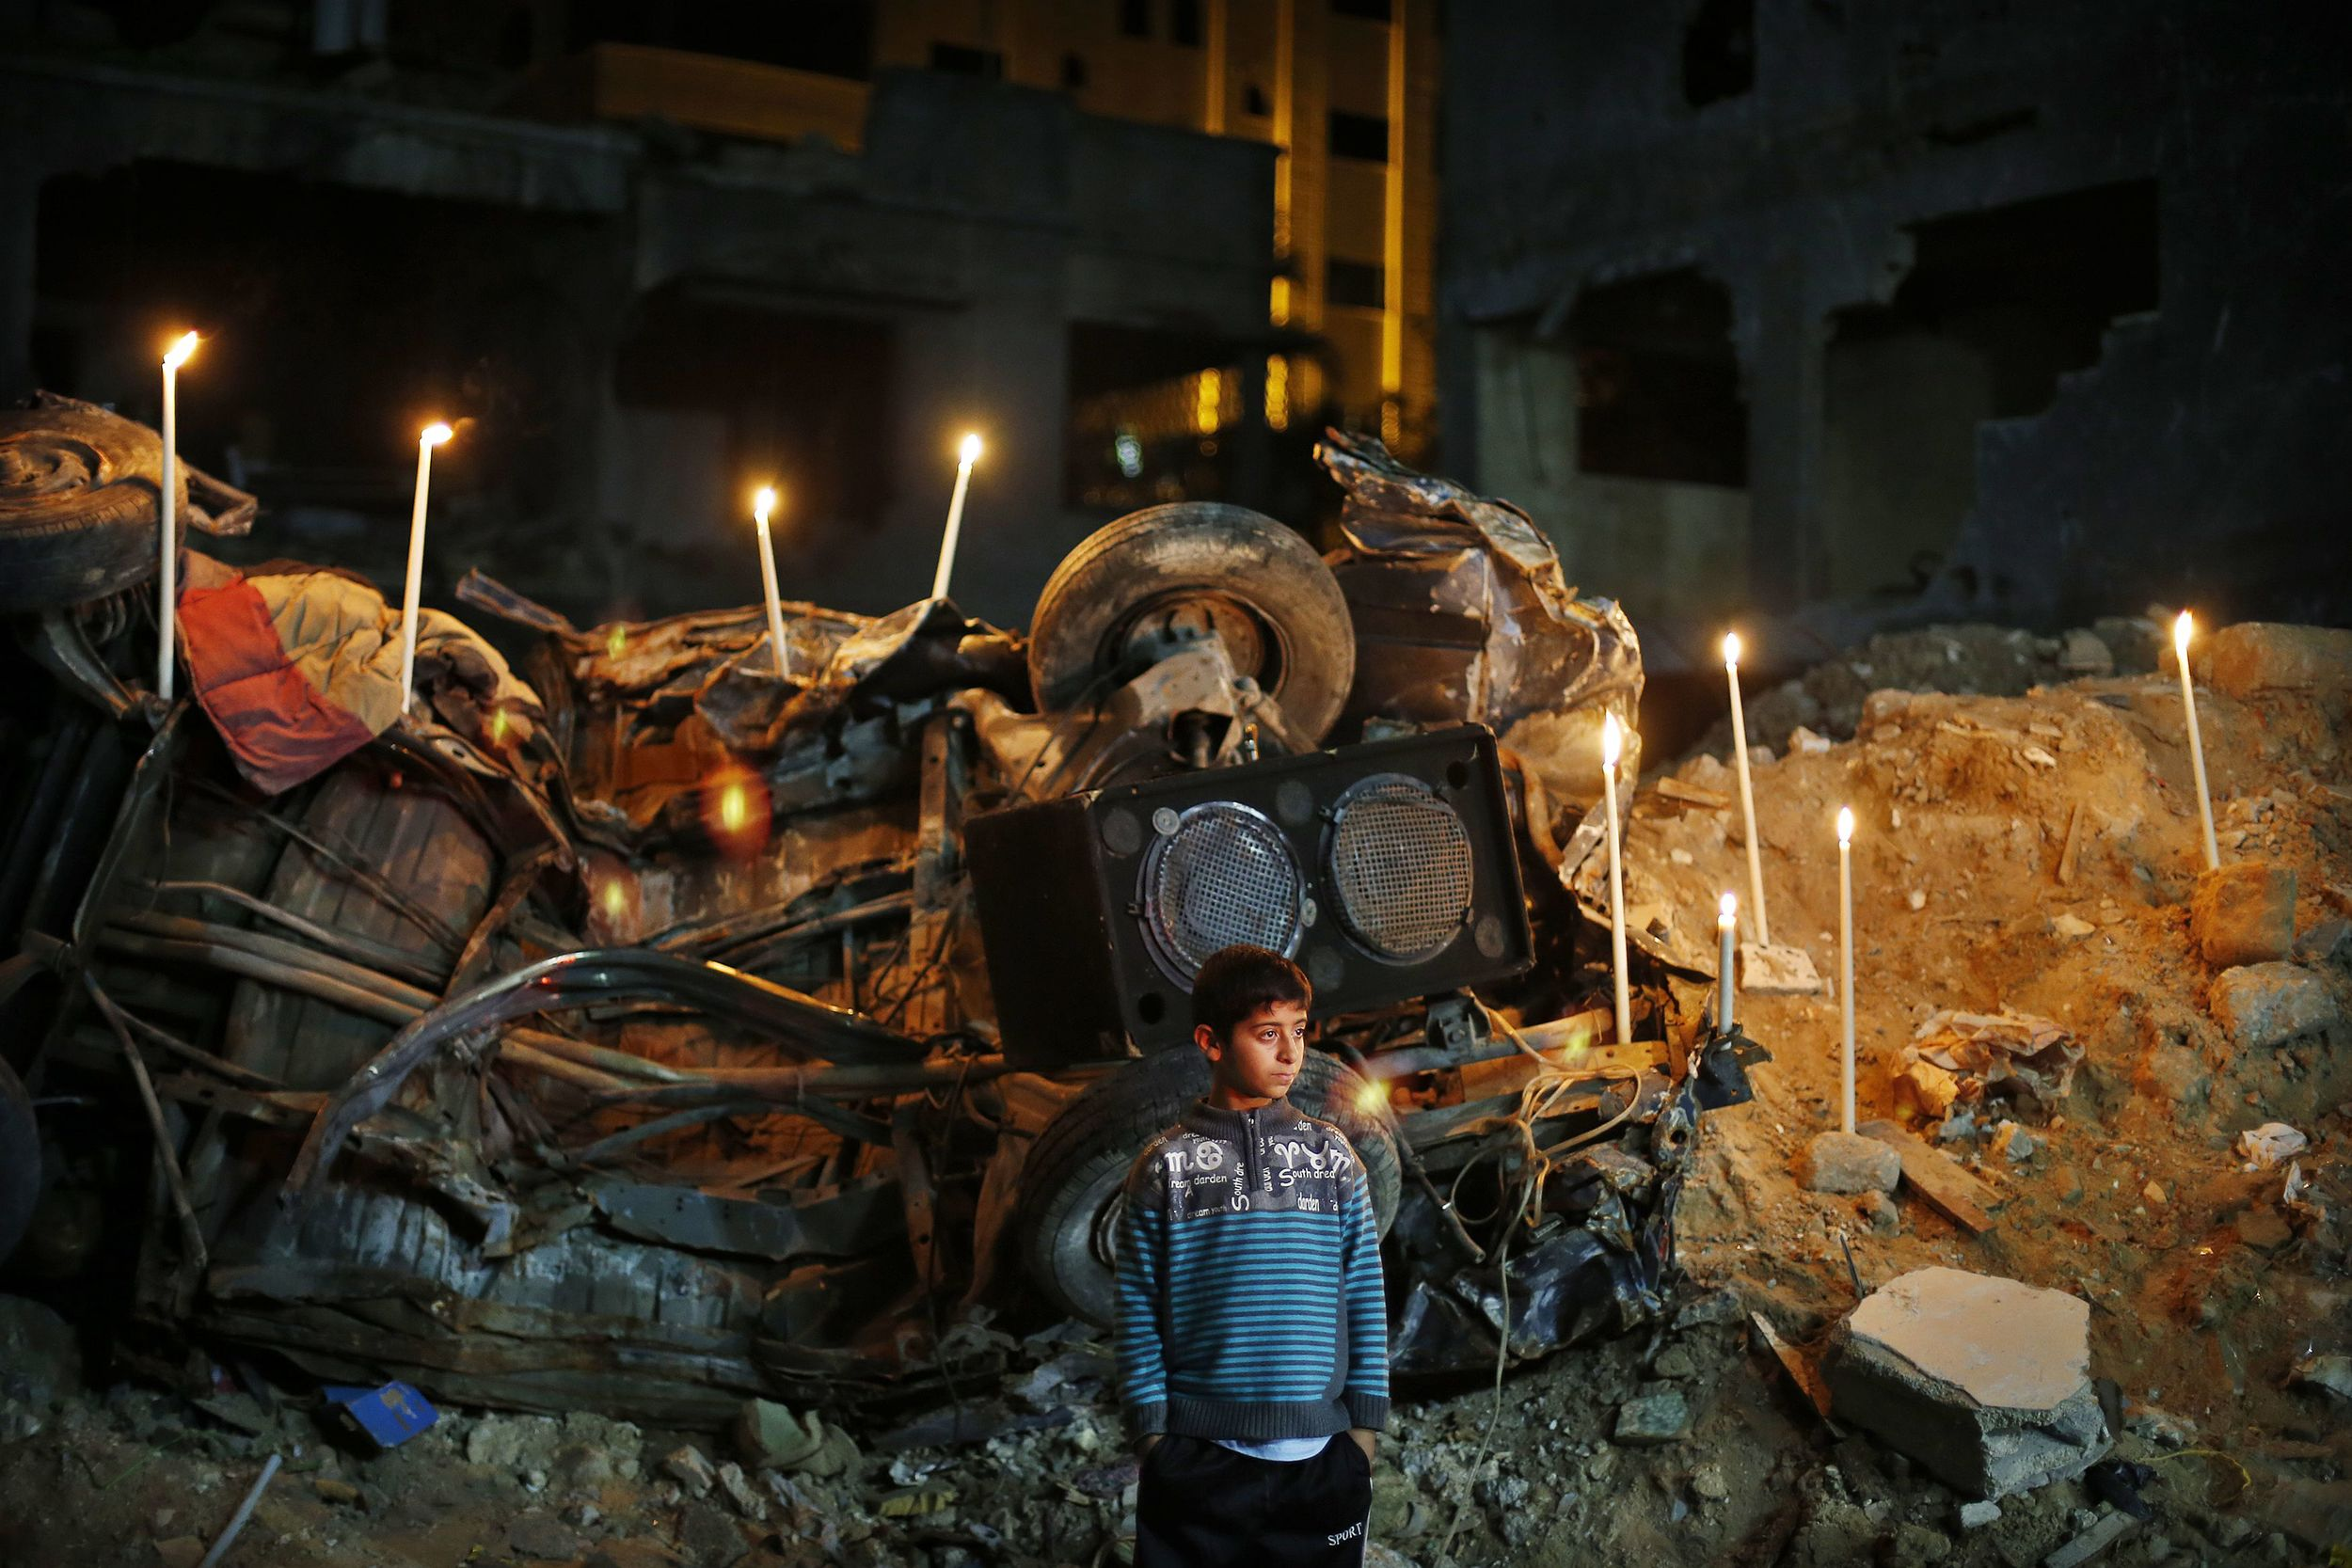 Israel and Gaza twenty days after Pillar of Defense - Photo courtesy of Reuters/Suhaib Sale